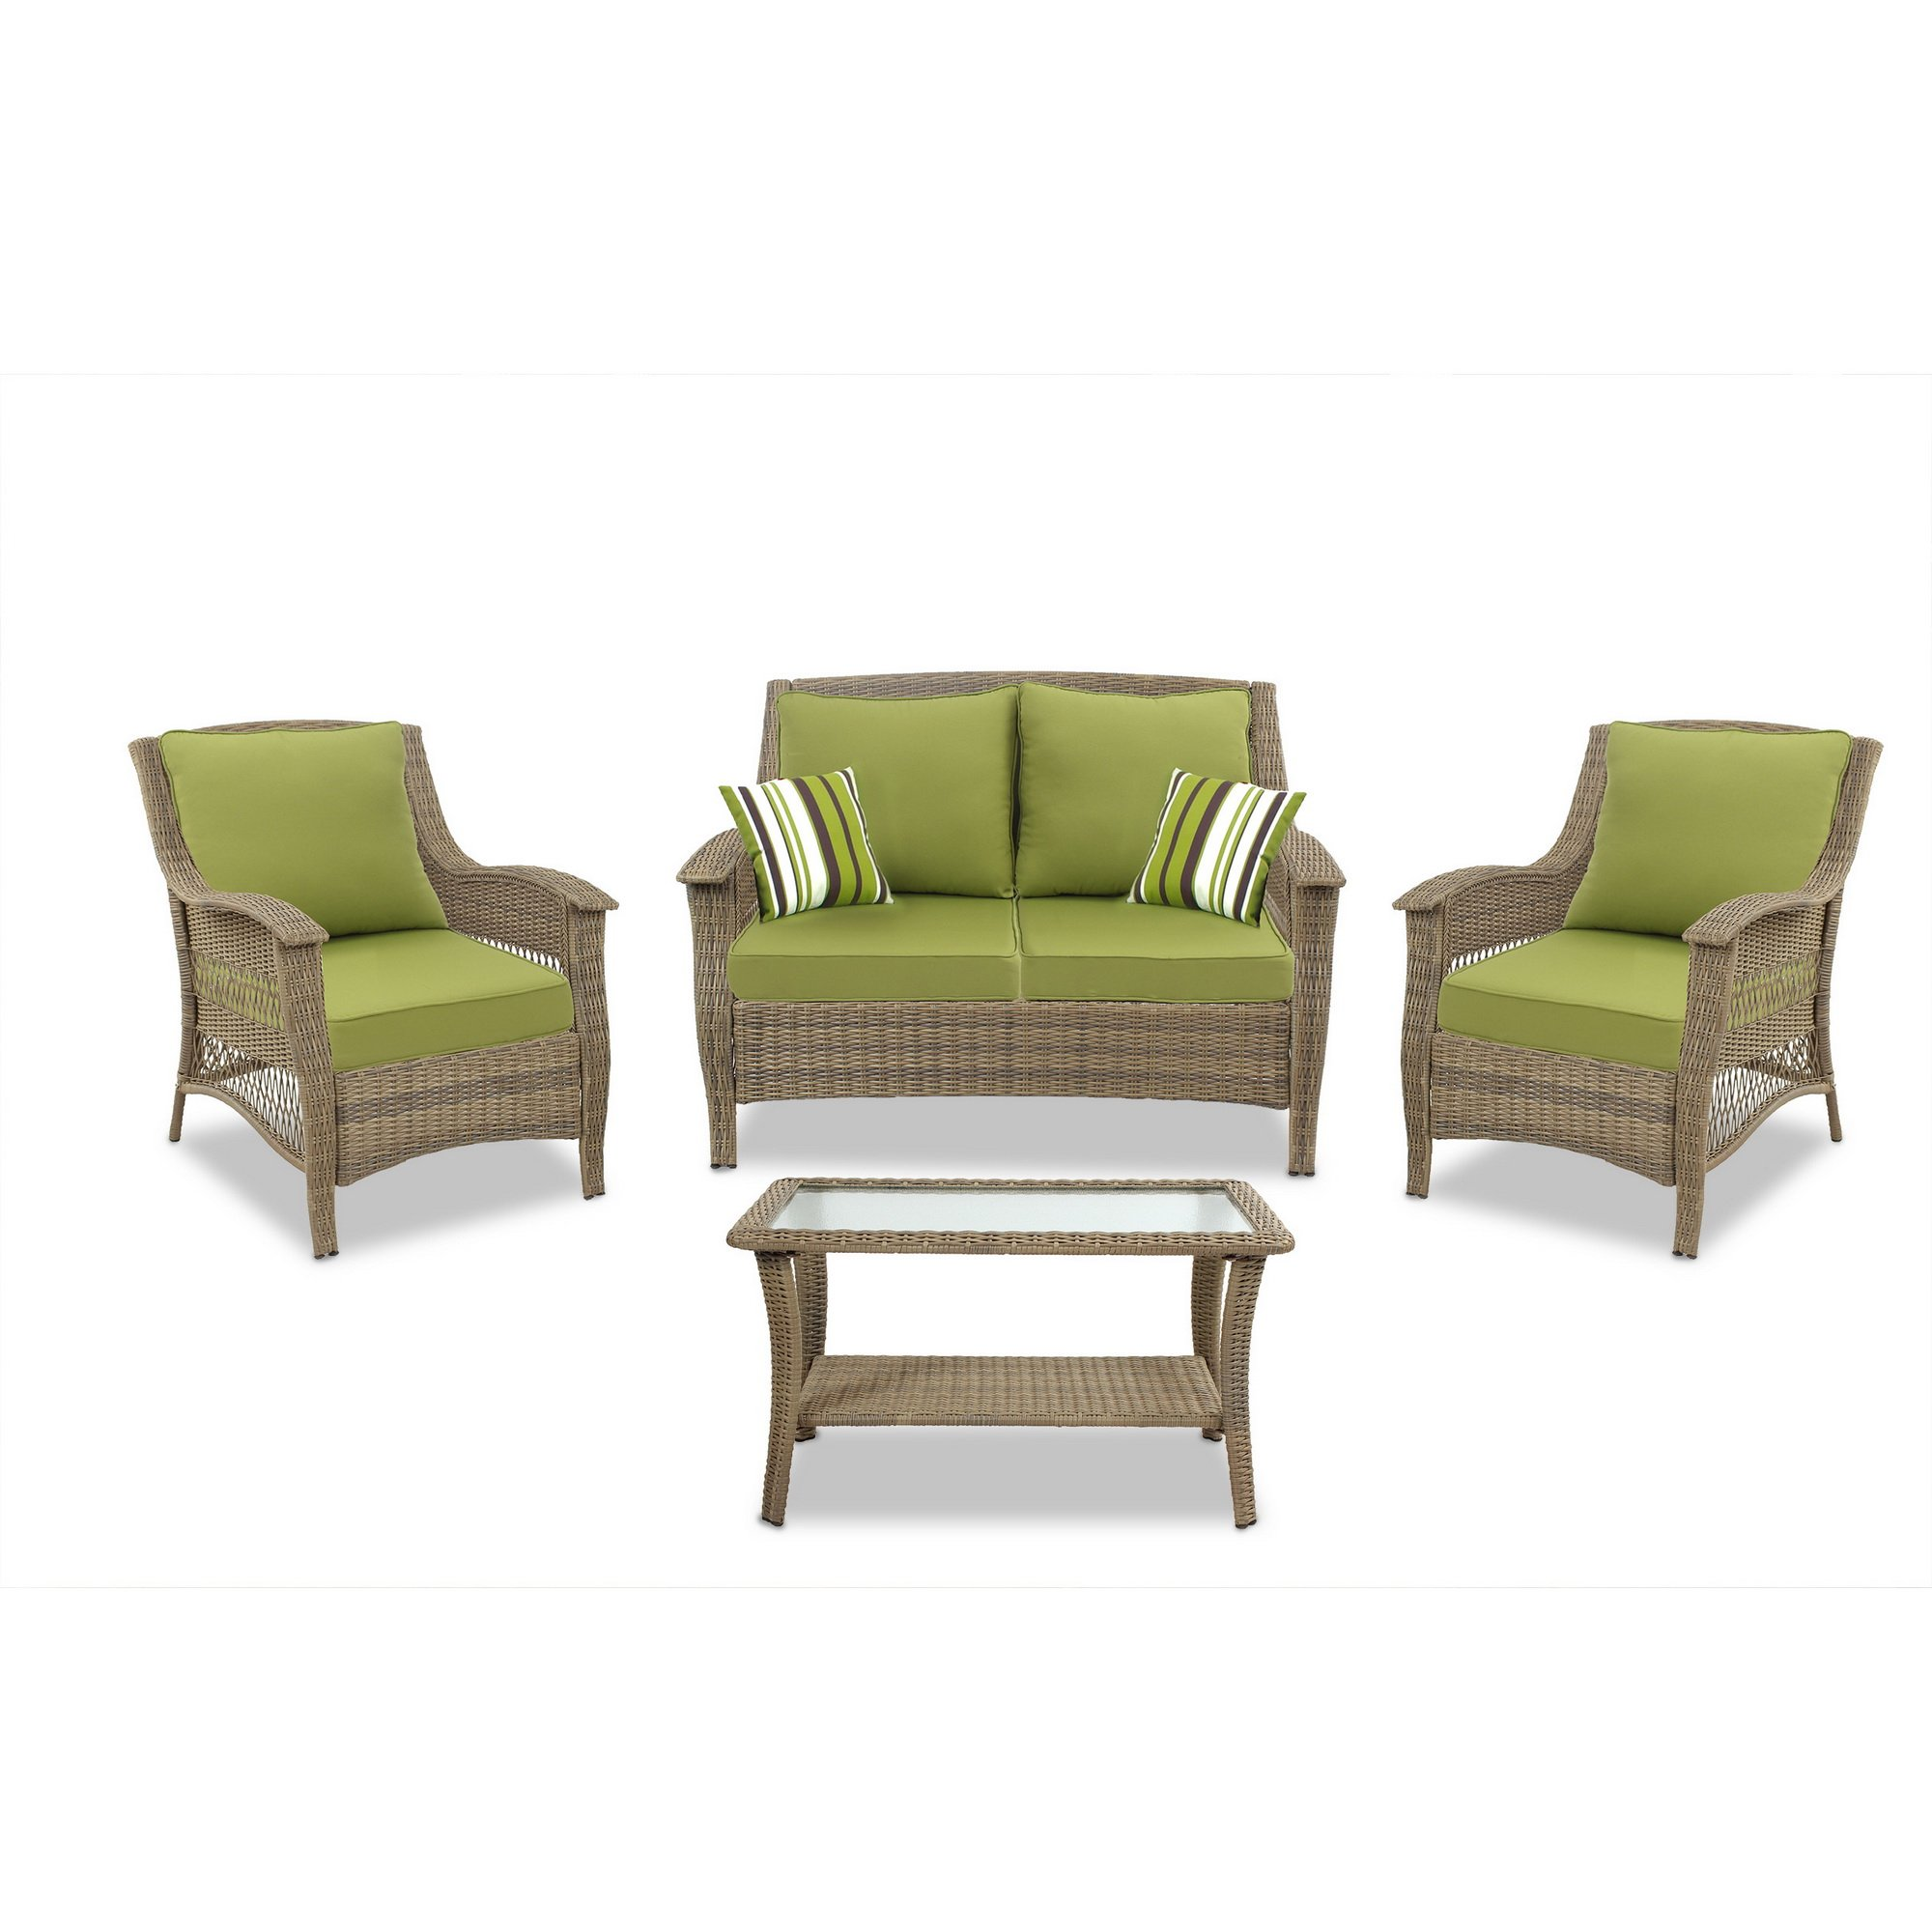 Quality Outdoor Living Greenport All-Weather Resin Wicker Deep Seating Patio Set, 4-Piece, Light Brown with Green Cushions